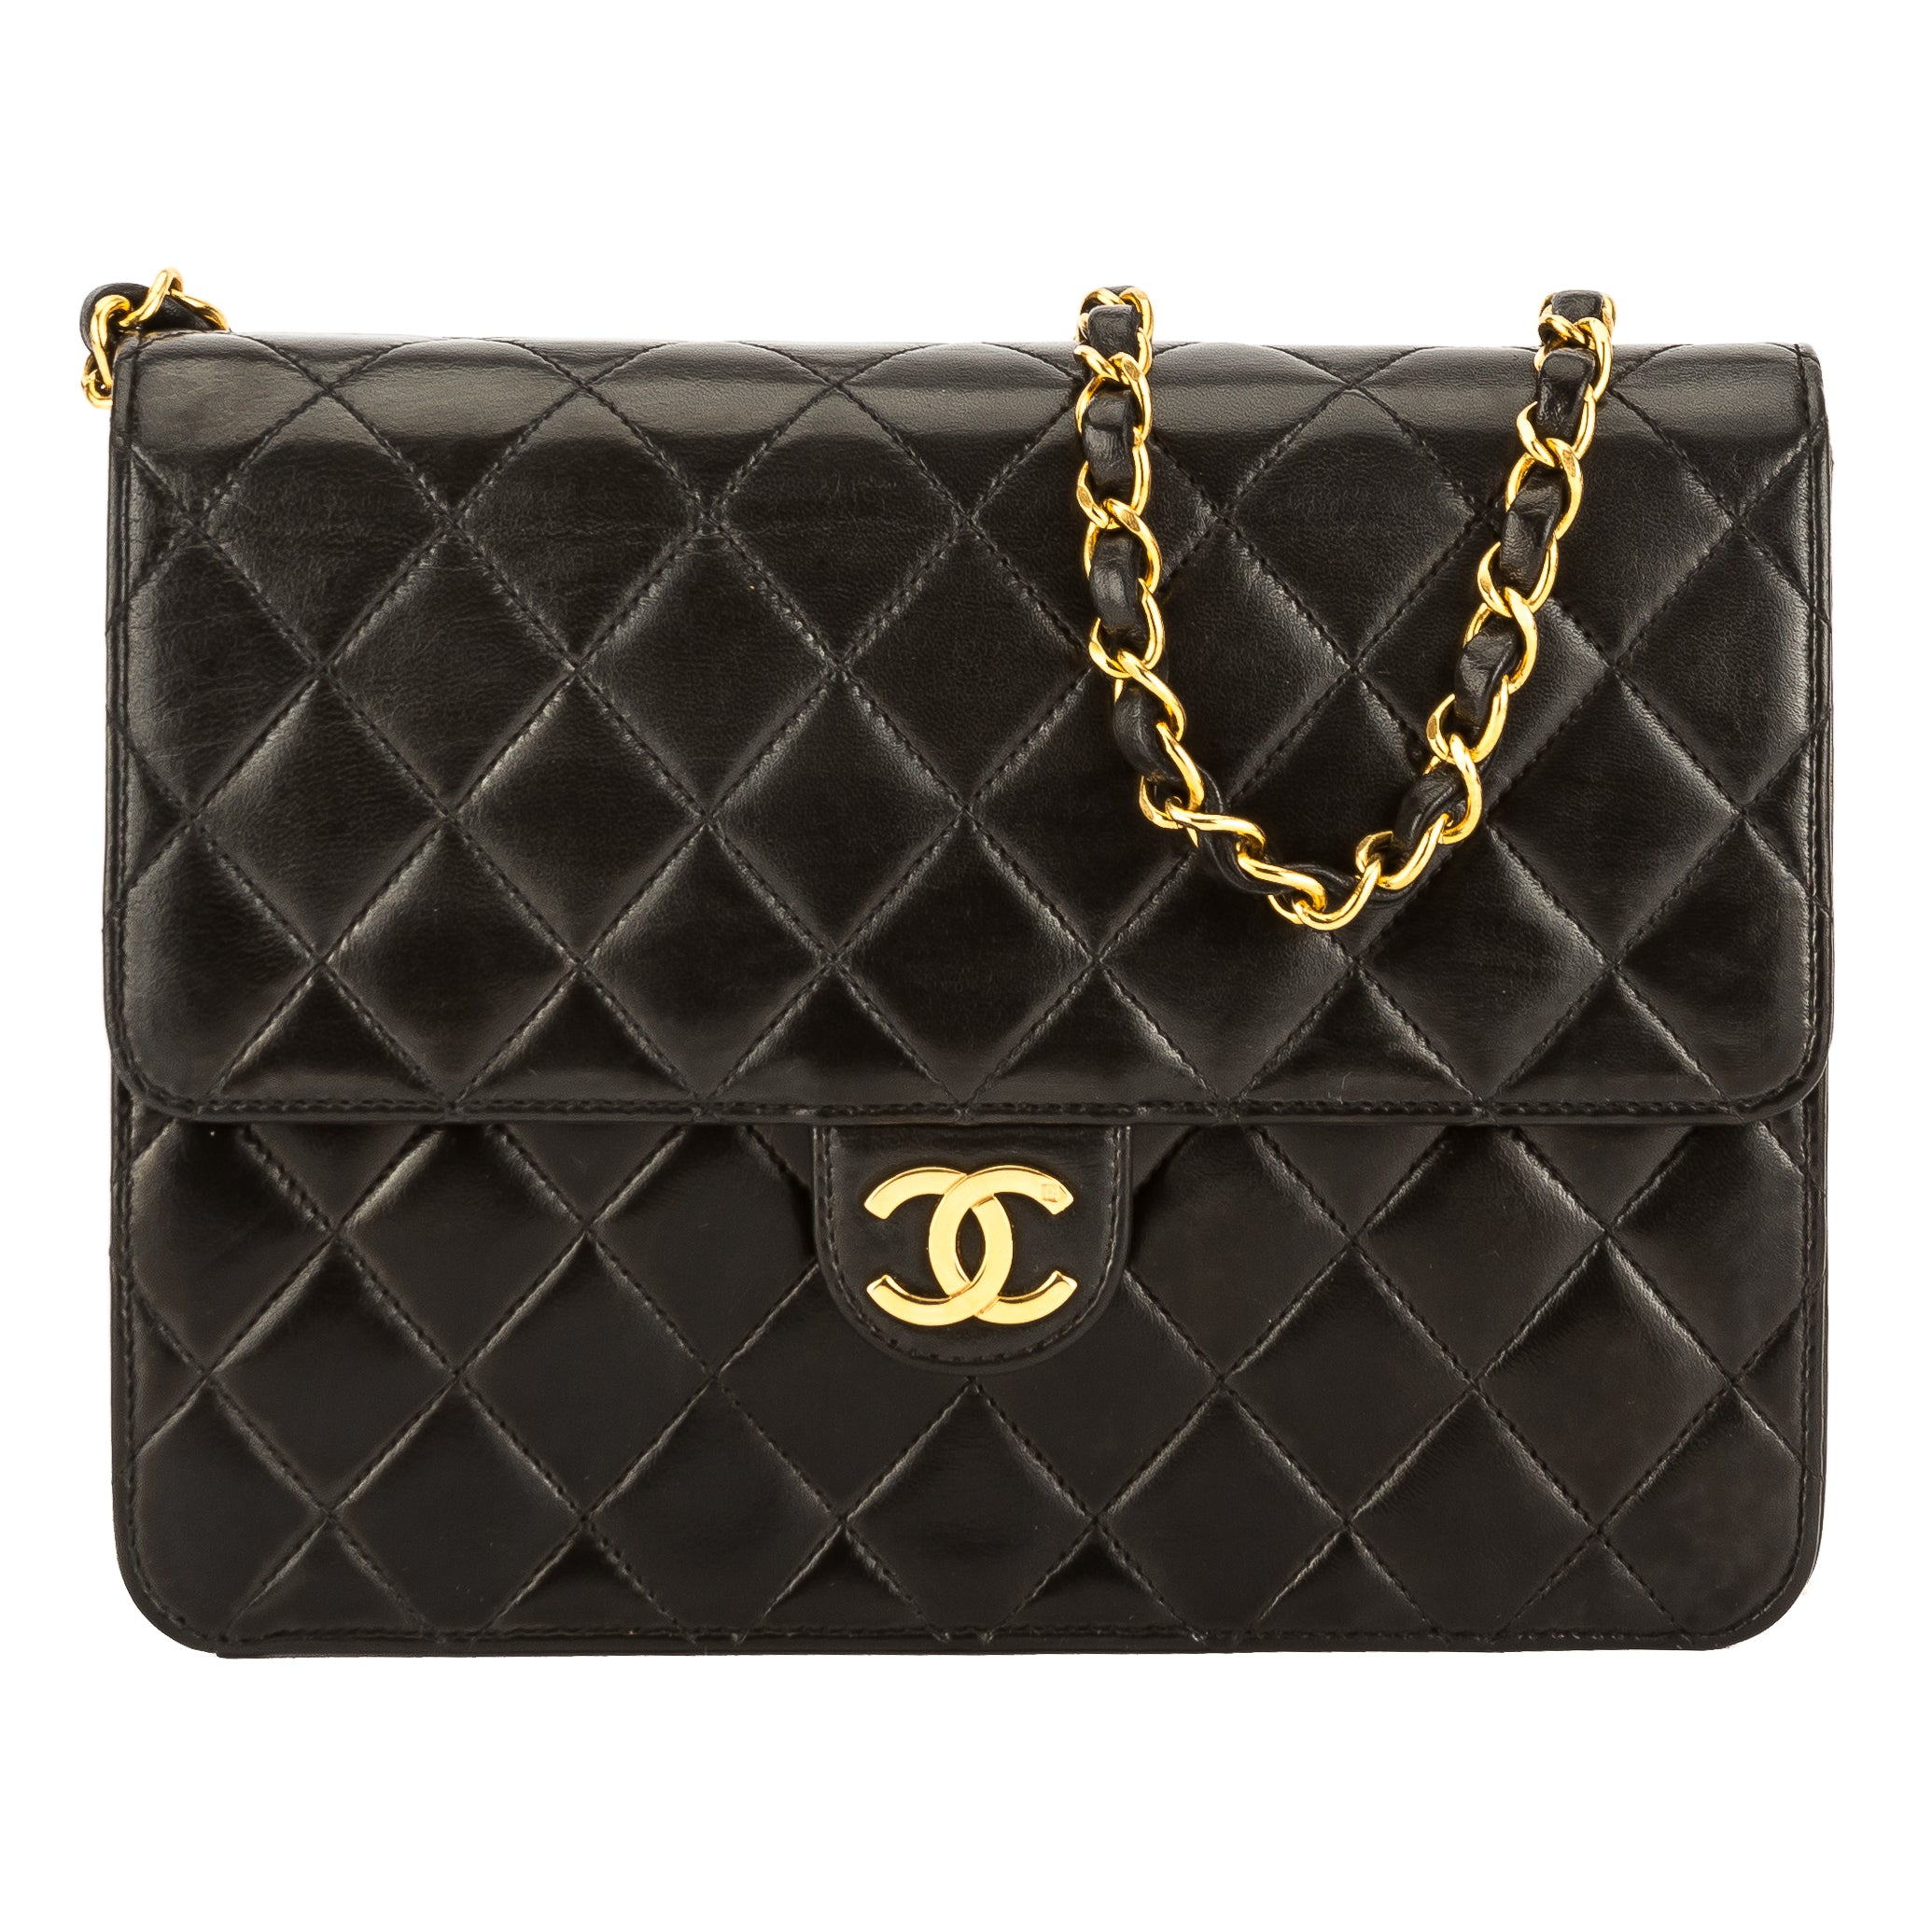 d2f7e3d1144b Chanel Black Quilted Lambskin Leather Chain Clutch Bag (3755009 ...